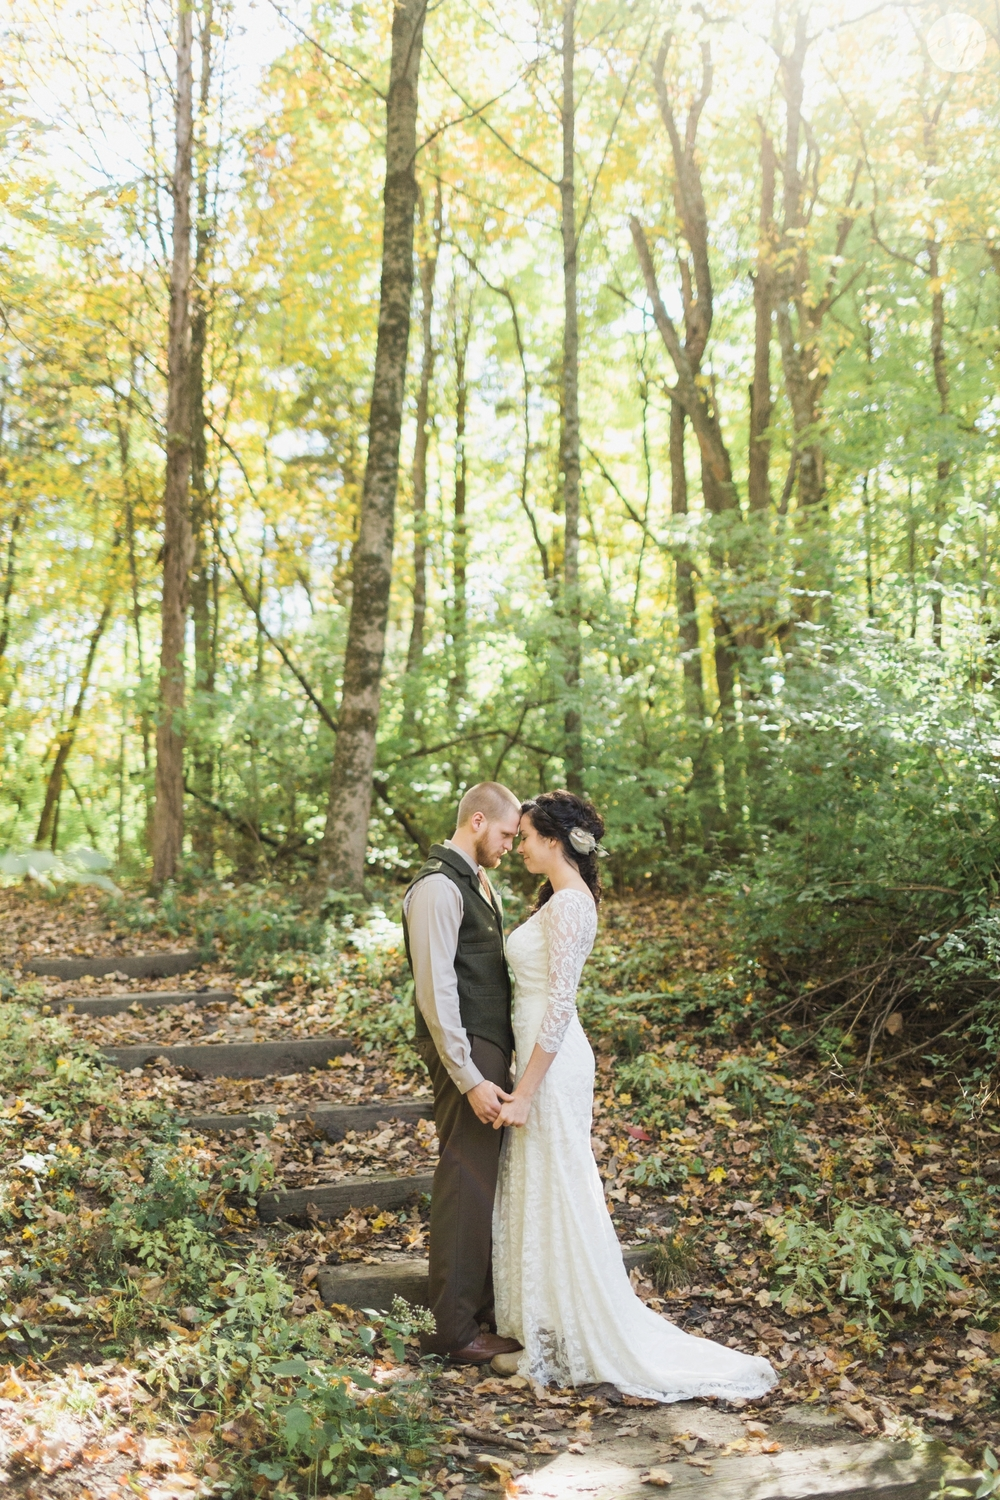 Outdoor-Wedding-in-the-Woods-Photography_4215.jpg